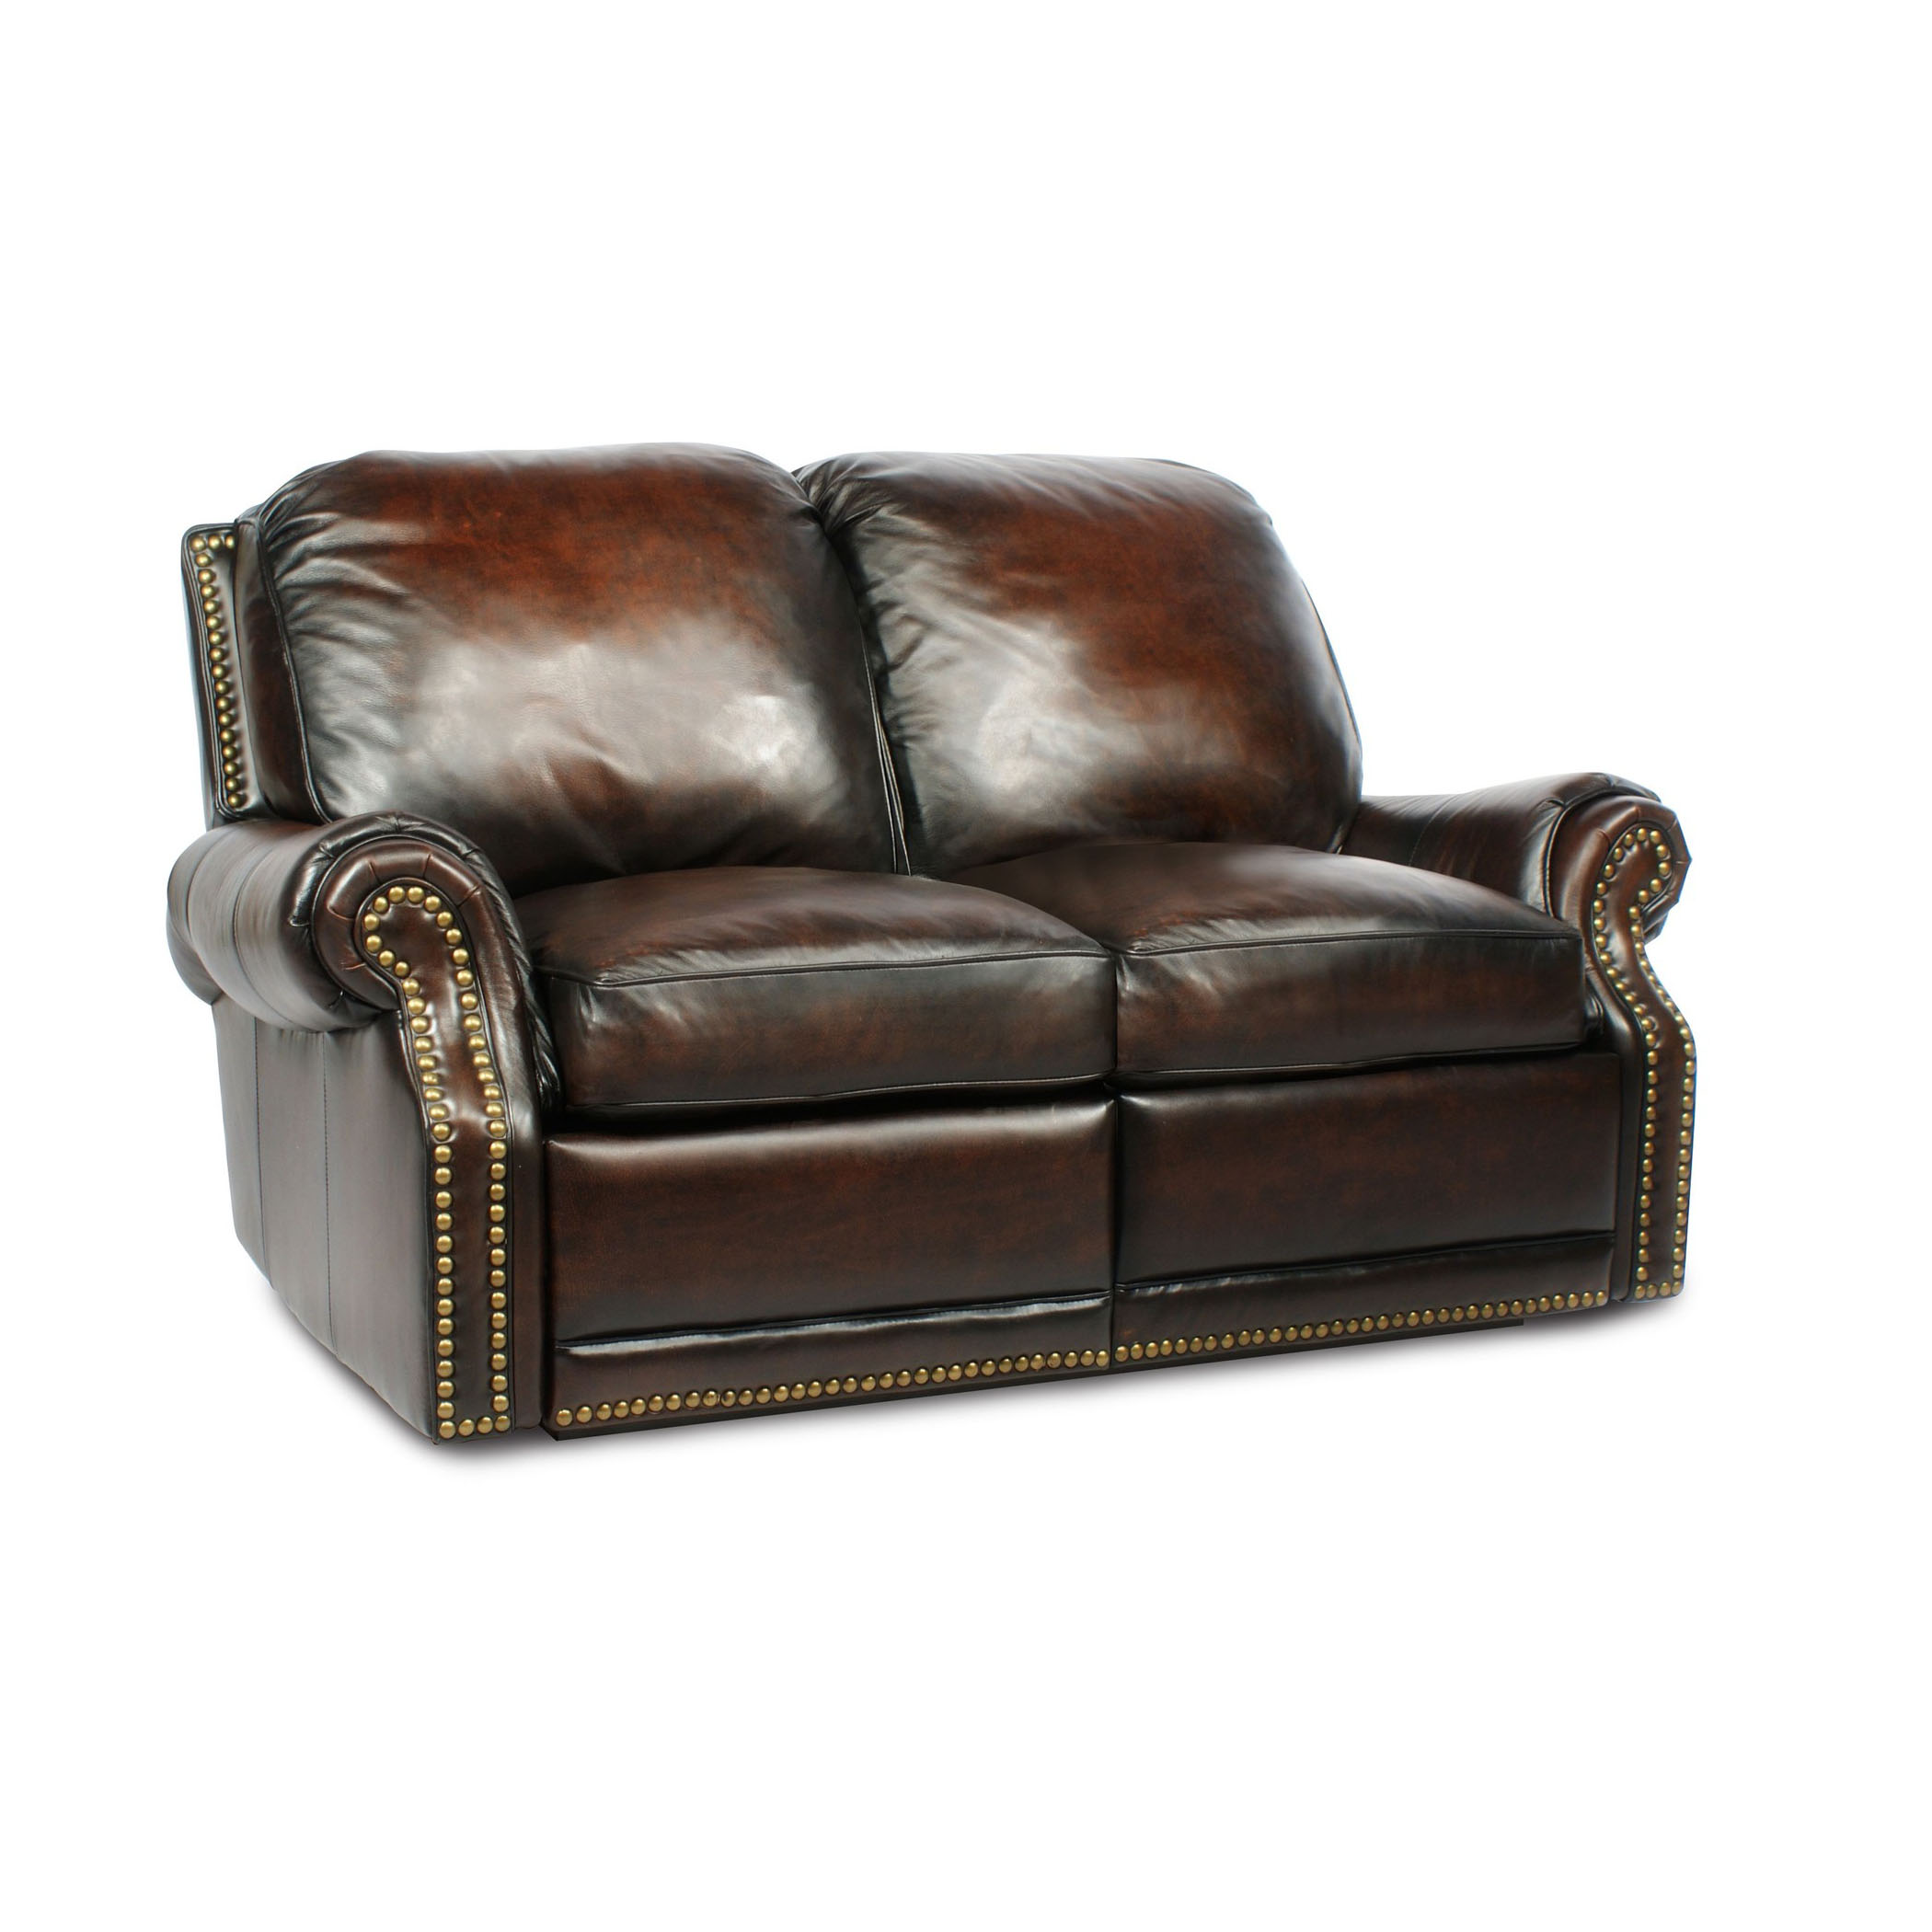 Leather Loveseat Barcalounger Premier Ii Leather 2 Seat Loveseat Sofa